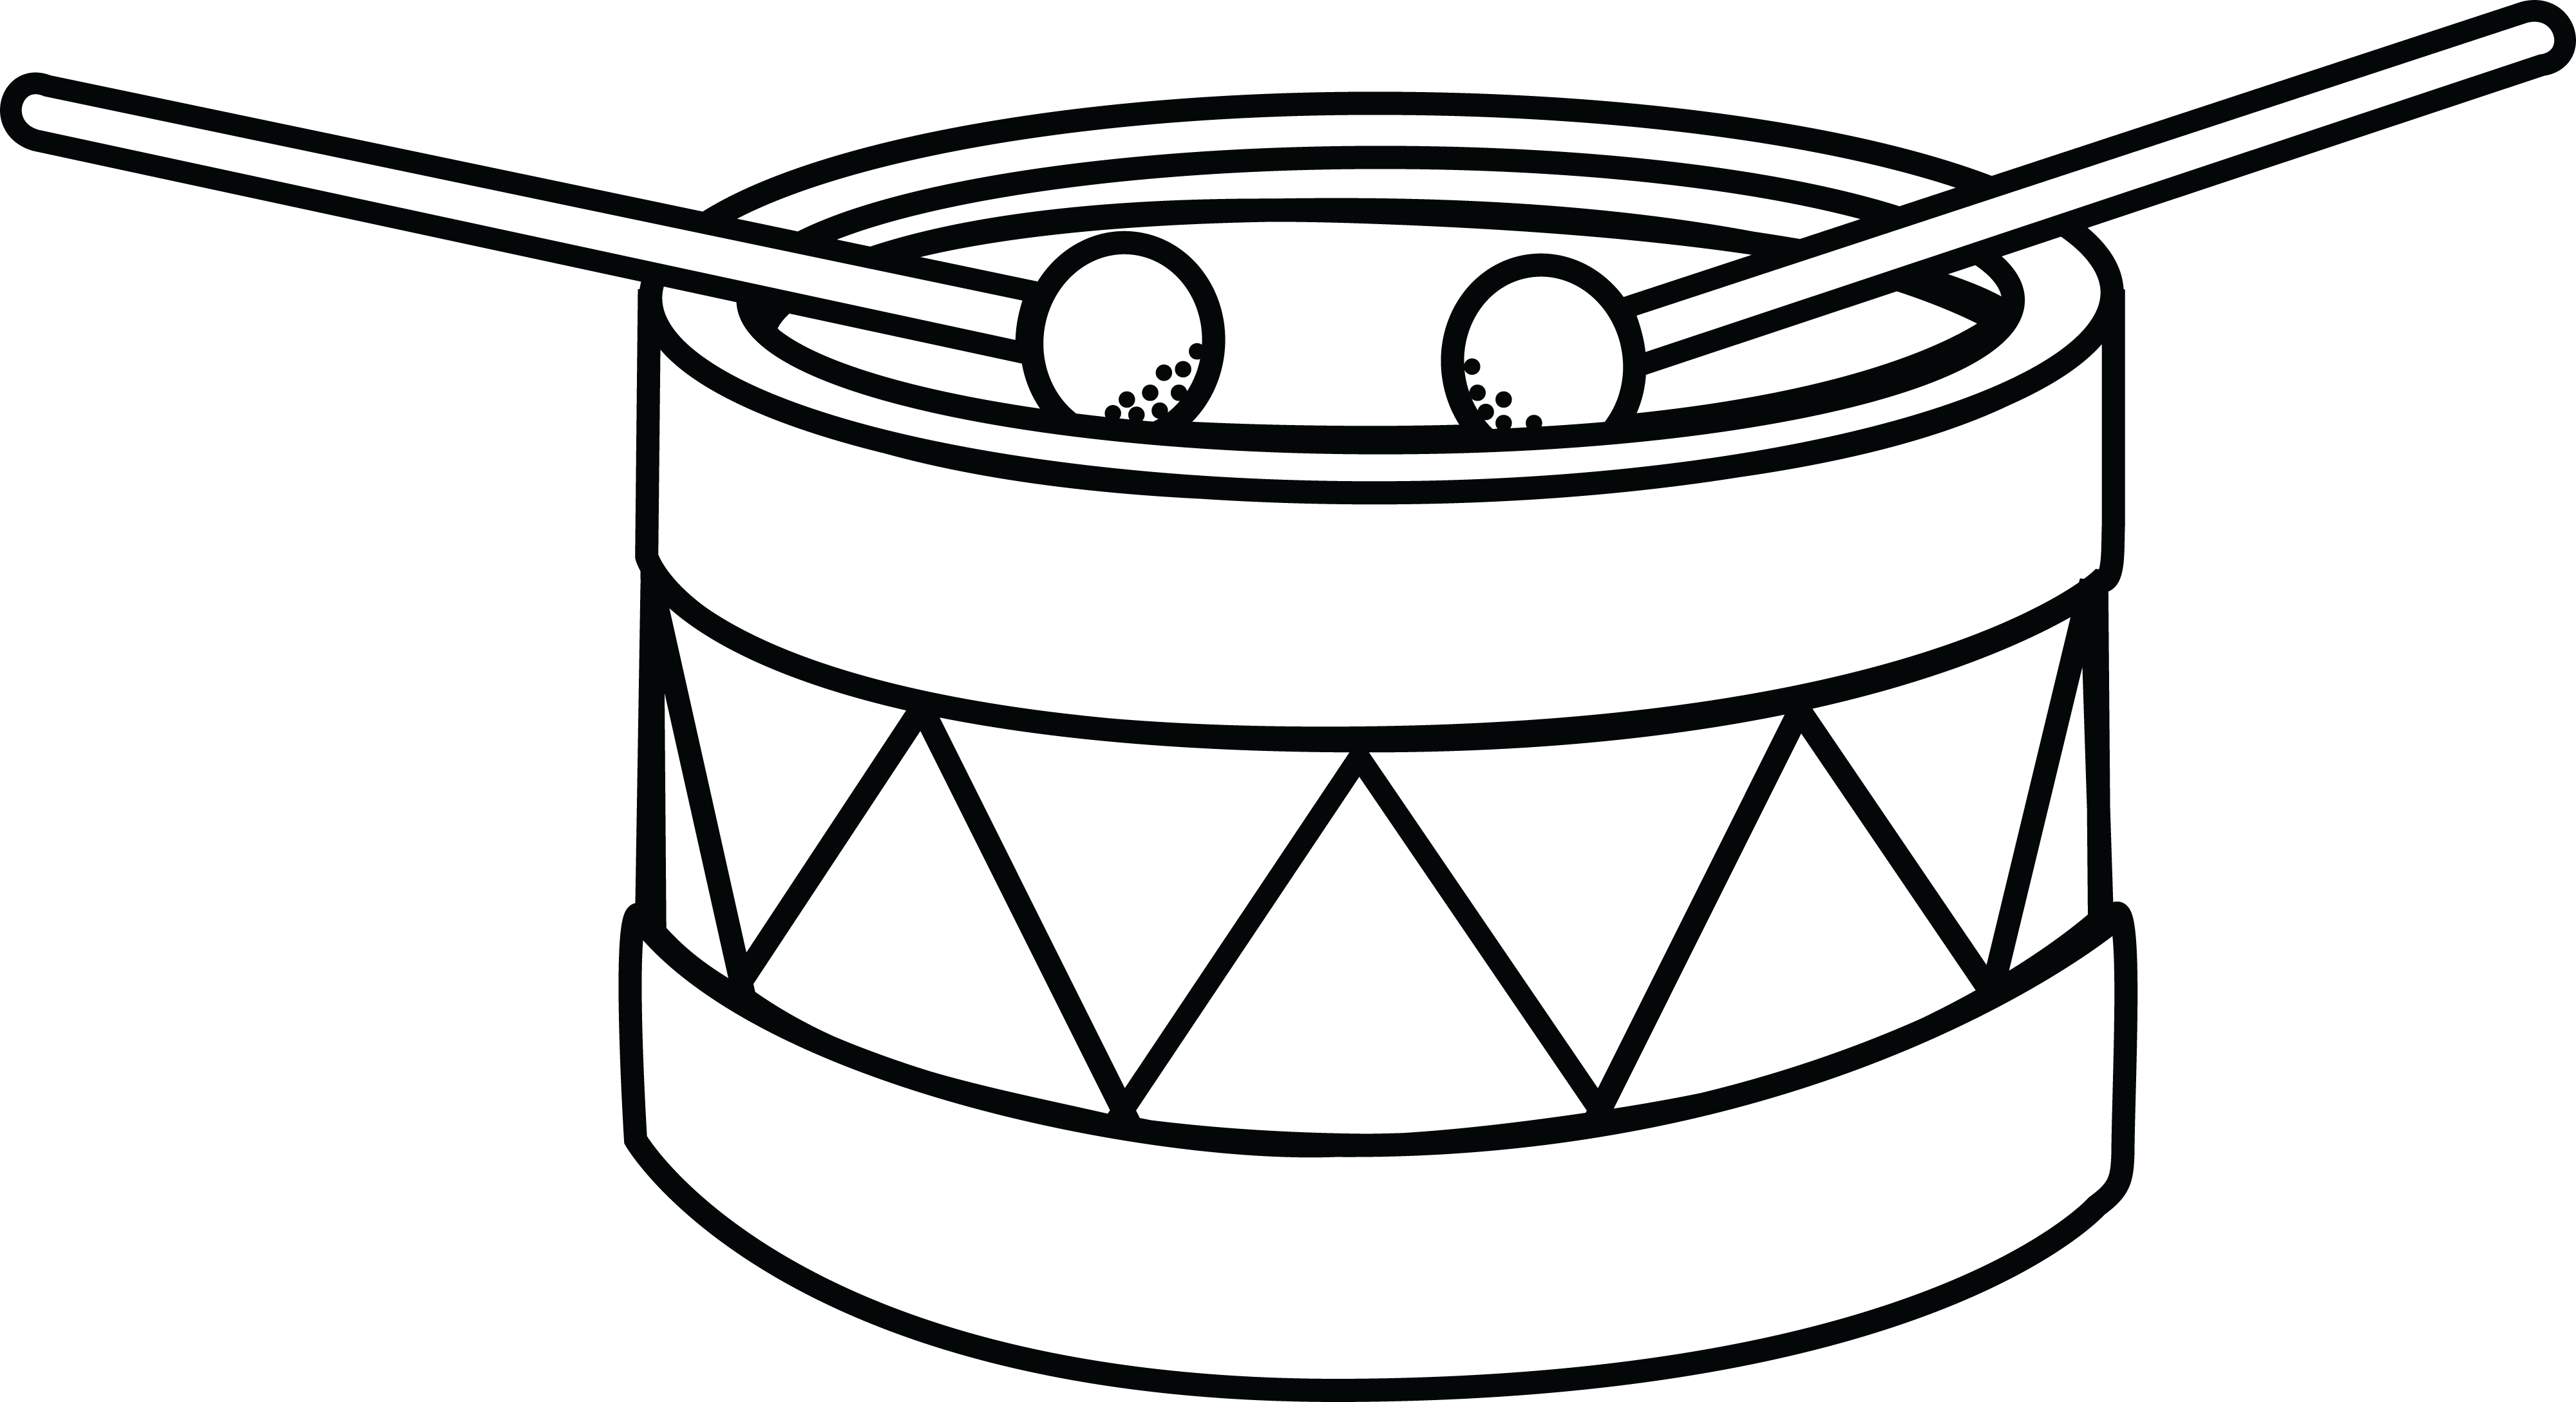 Free Clipart Of A Drum Clip Art Black And White Drum Png Download Full Size Clipart 303241 Pinclipart